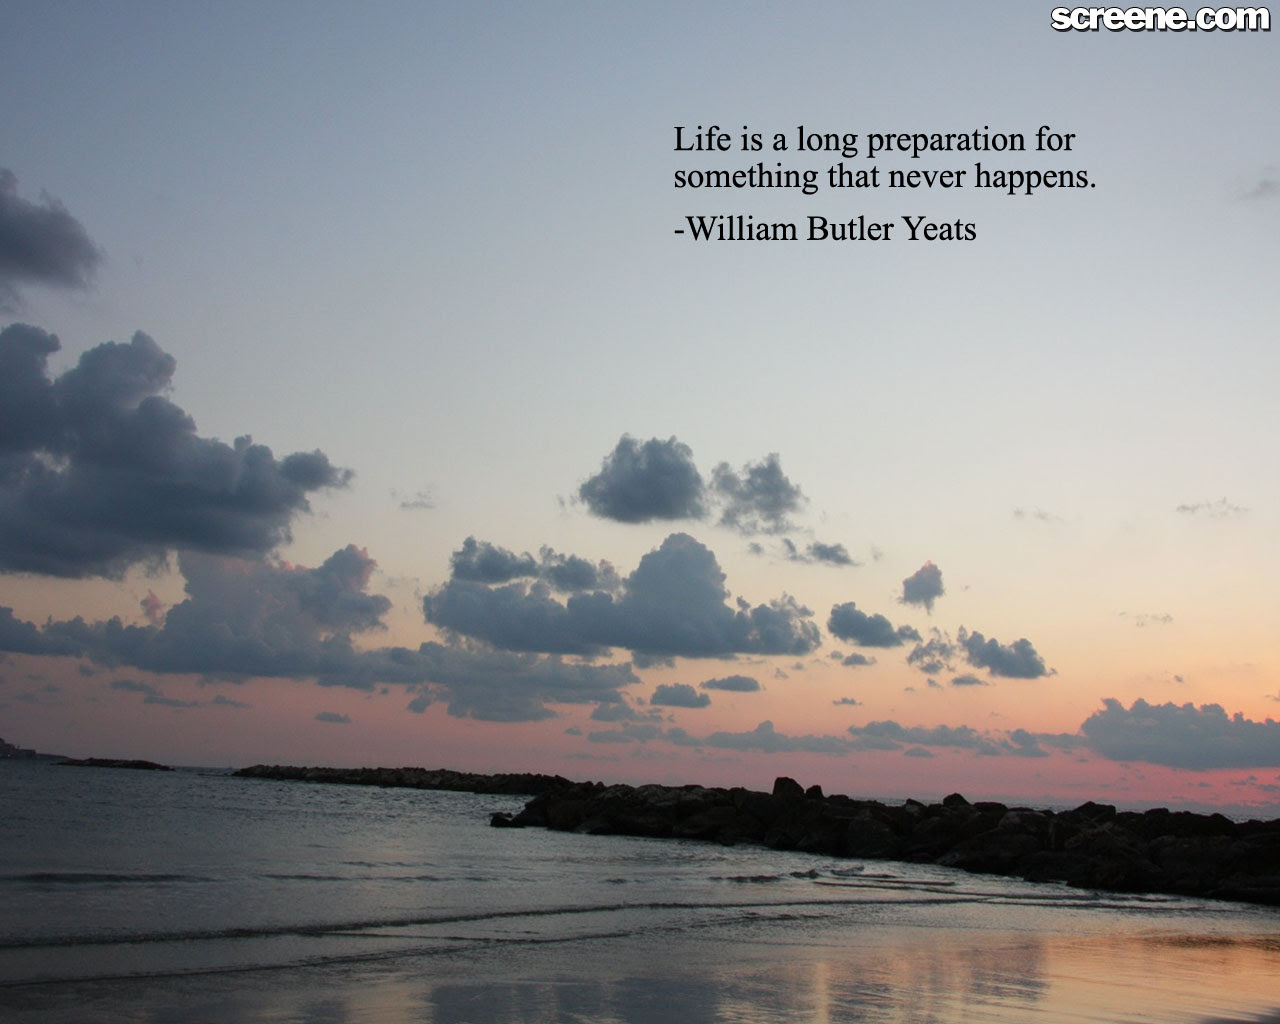 Life Is A Long Preparations For Something That Never Happens